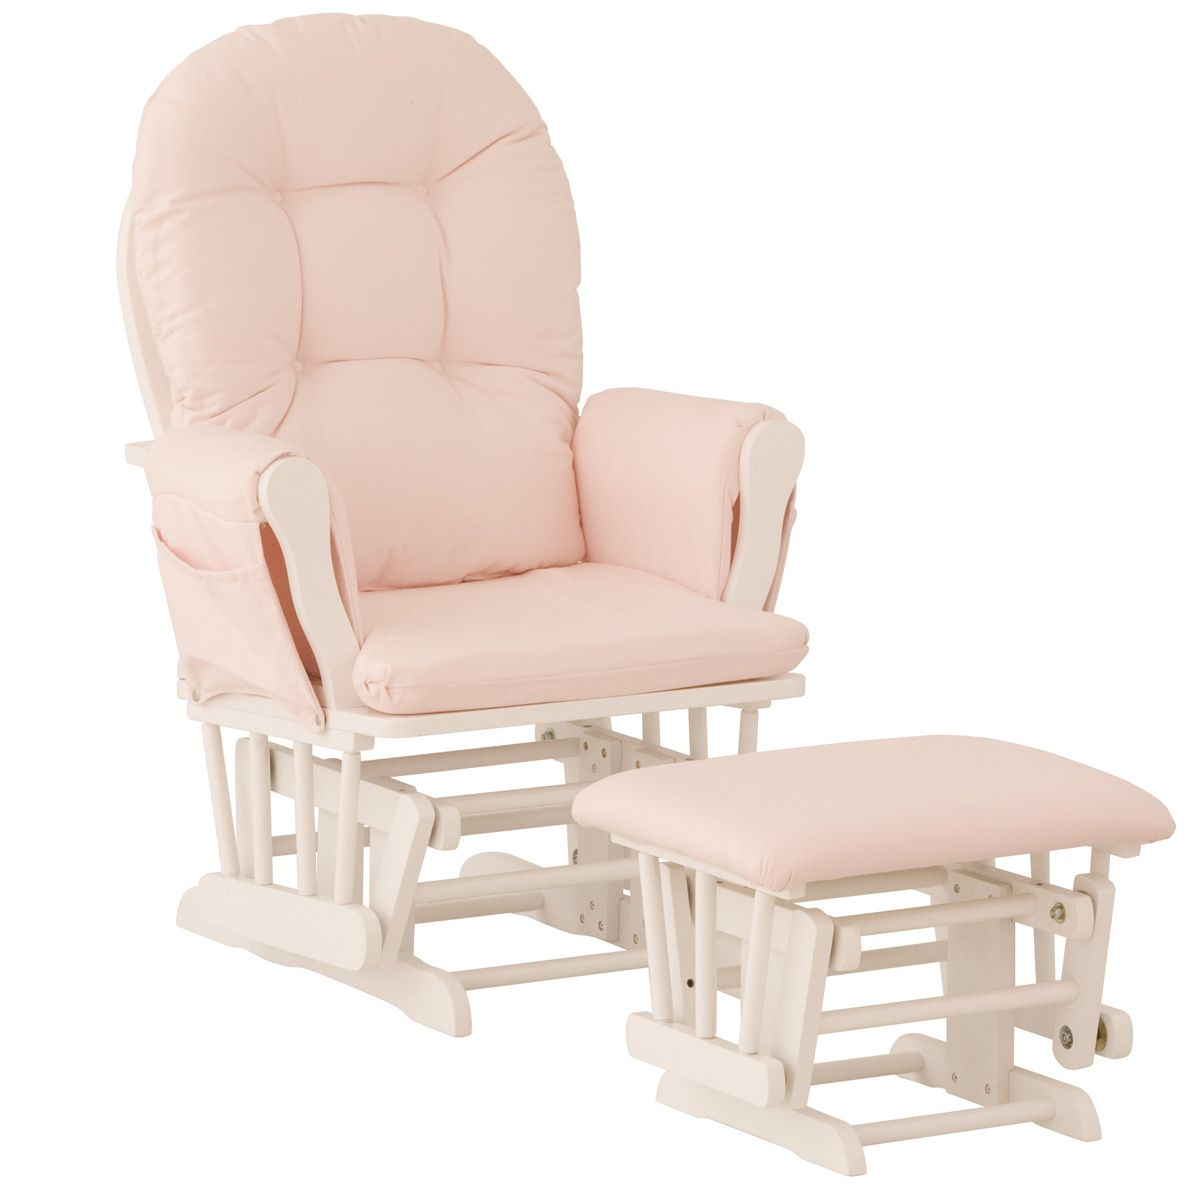 pink nursery rocking chair broyhill bonded leather manager chairs gliders sears storkcraft hoop glider and ottoman white